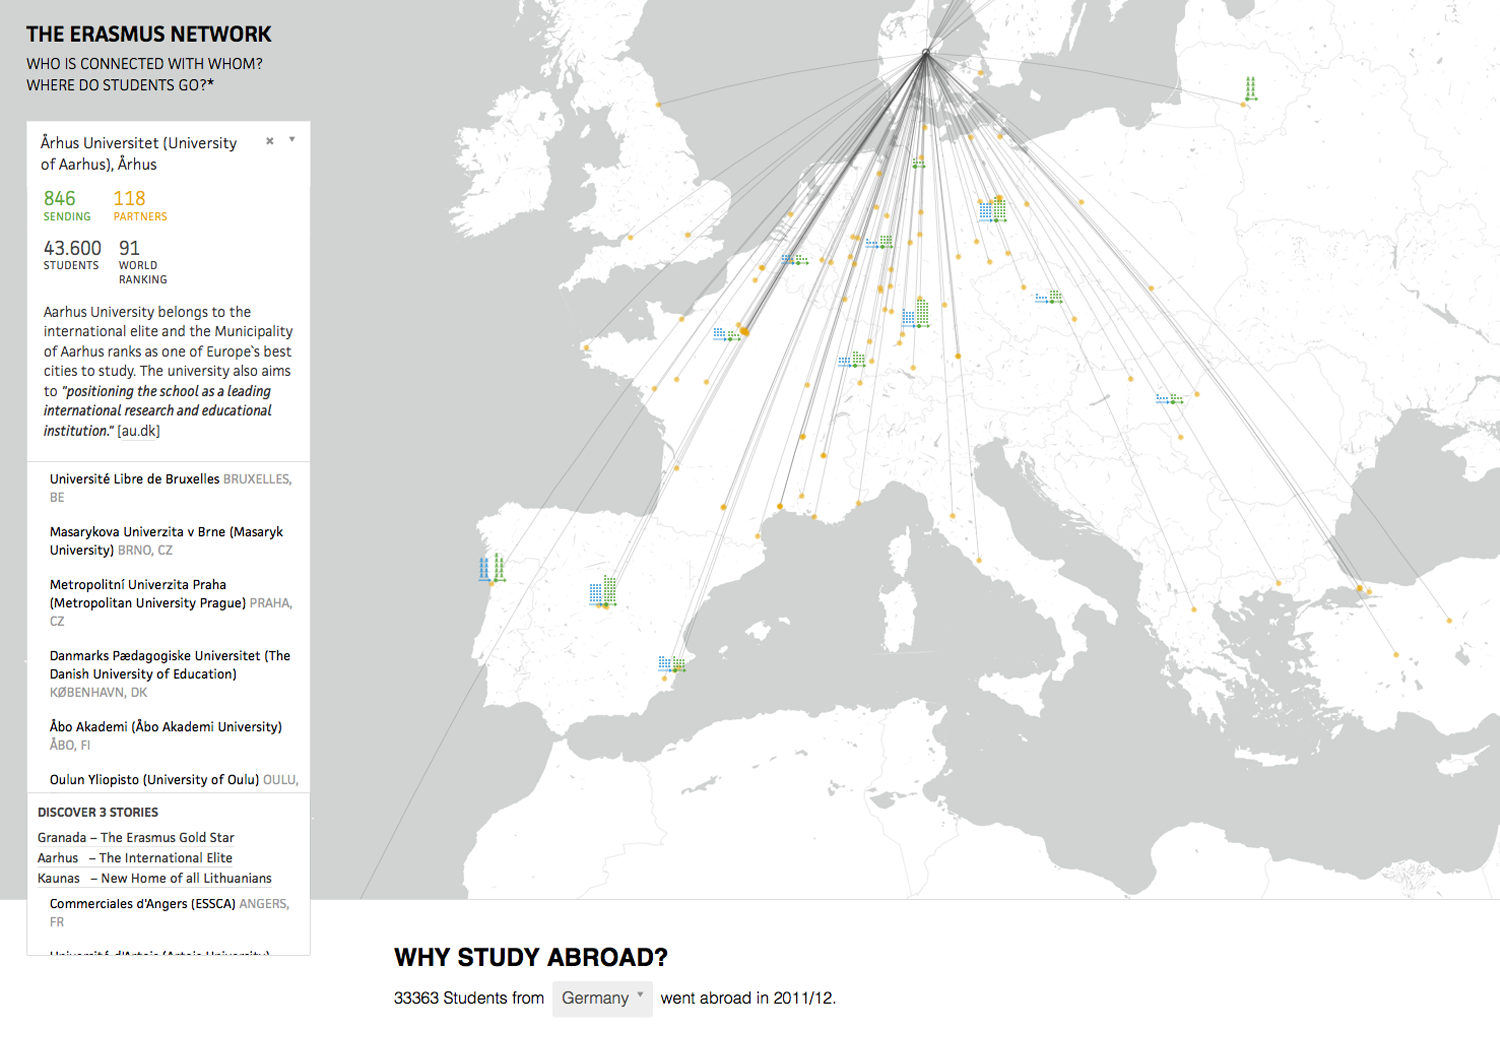 The Erasmus Network Infographic